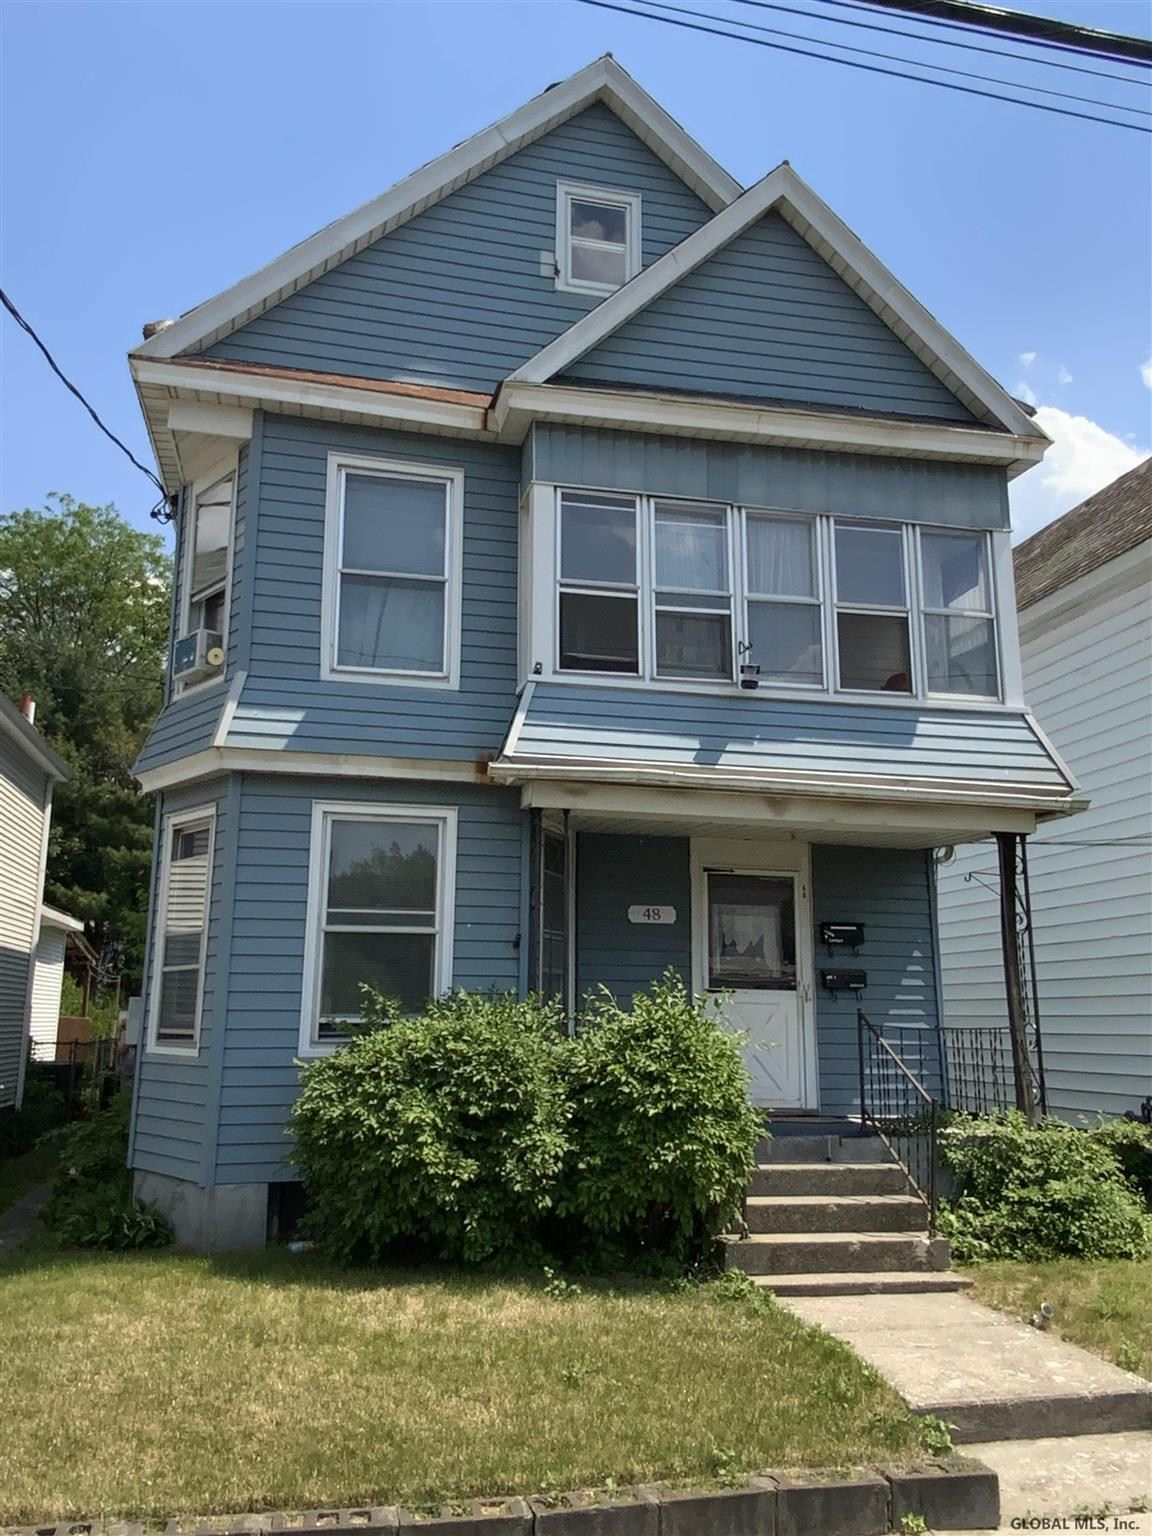 48 CHISWELL ST, Schenectady, NY 12304 - #: 202119609